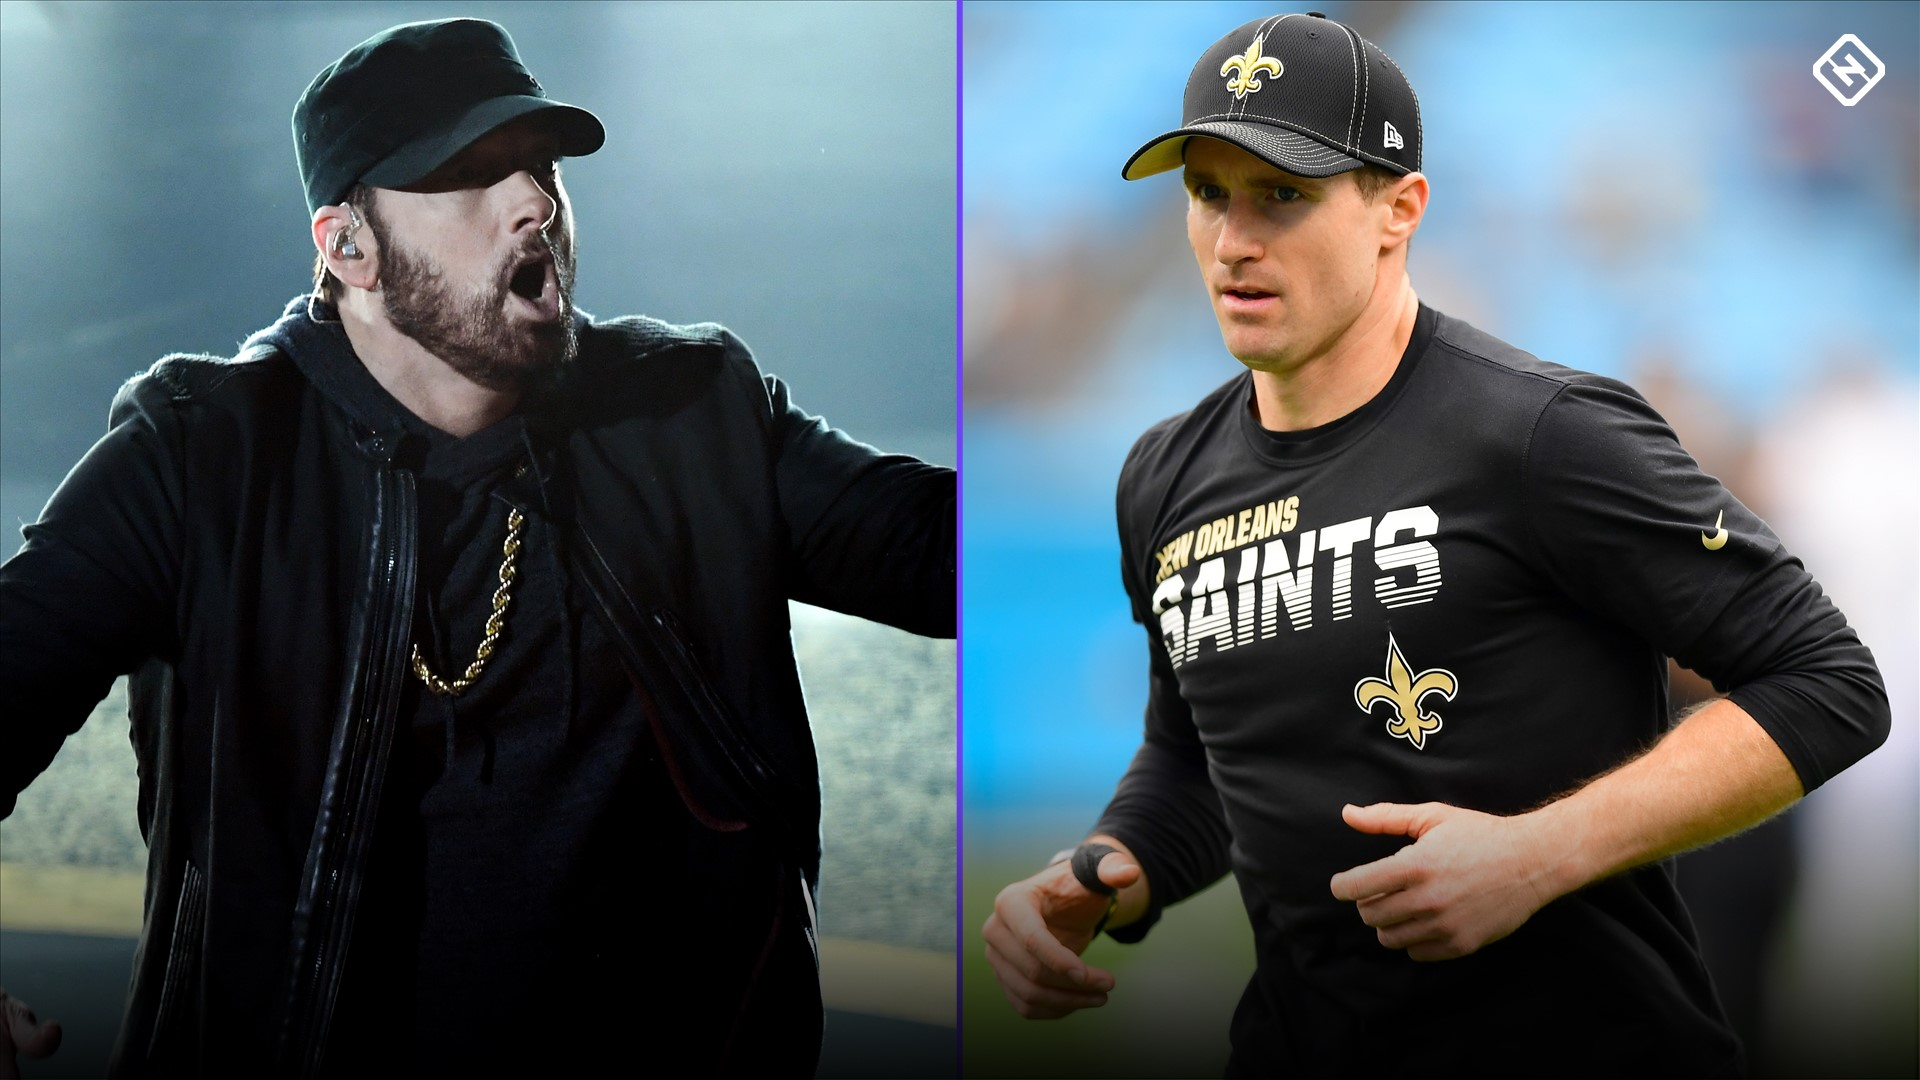 https://celebritycontent.com/2020/07/11/eminem-has-harsh-words-for-drew-brees-in-new-song-with-kid-cudi-sporting-news/